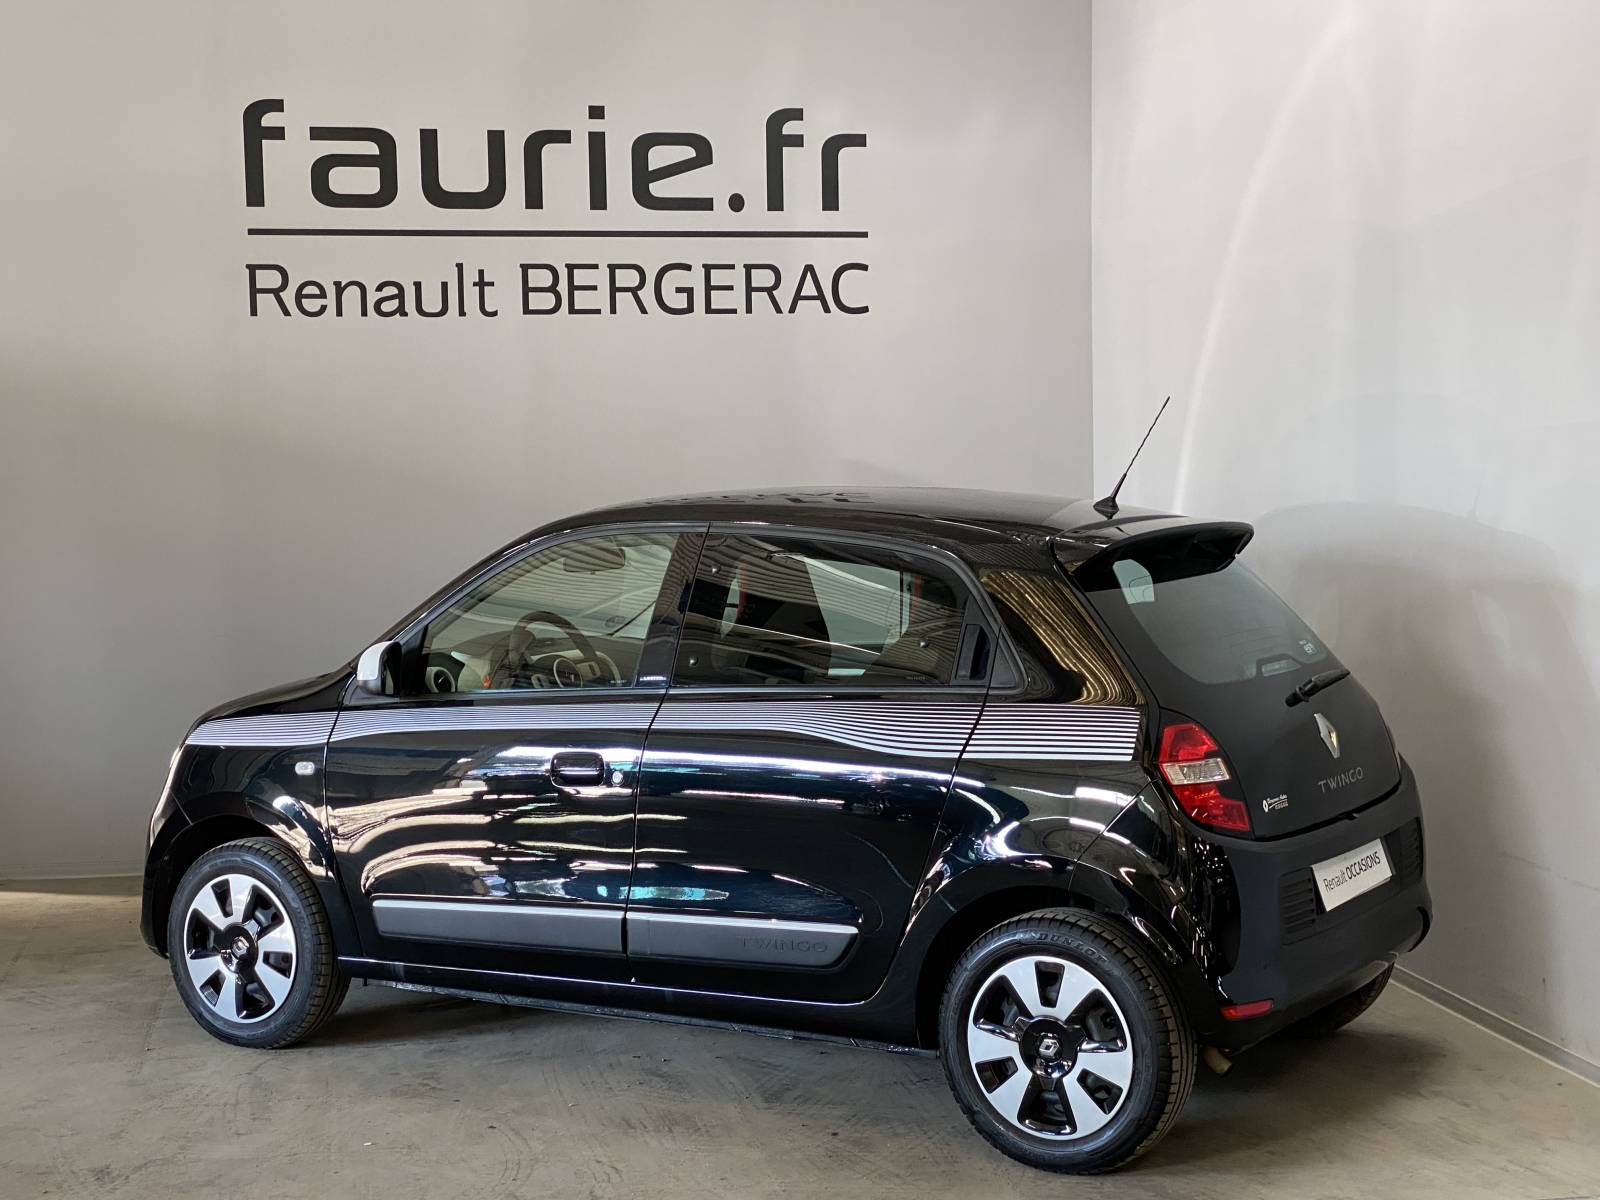 RENAULT Twingo III 0.9 TCe 90 Energy - véhicule d'occasion - Site Internet Faurie - Renault - Faurie Auto Bergerac - 24100 - Bergerac - 8